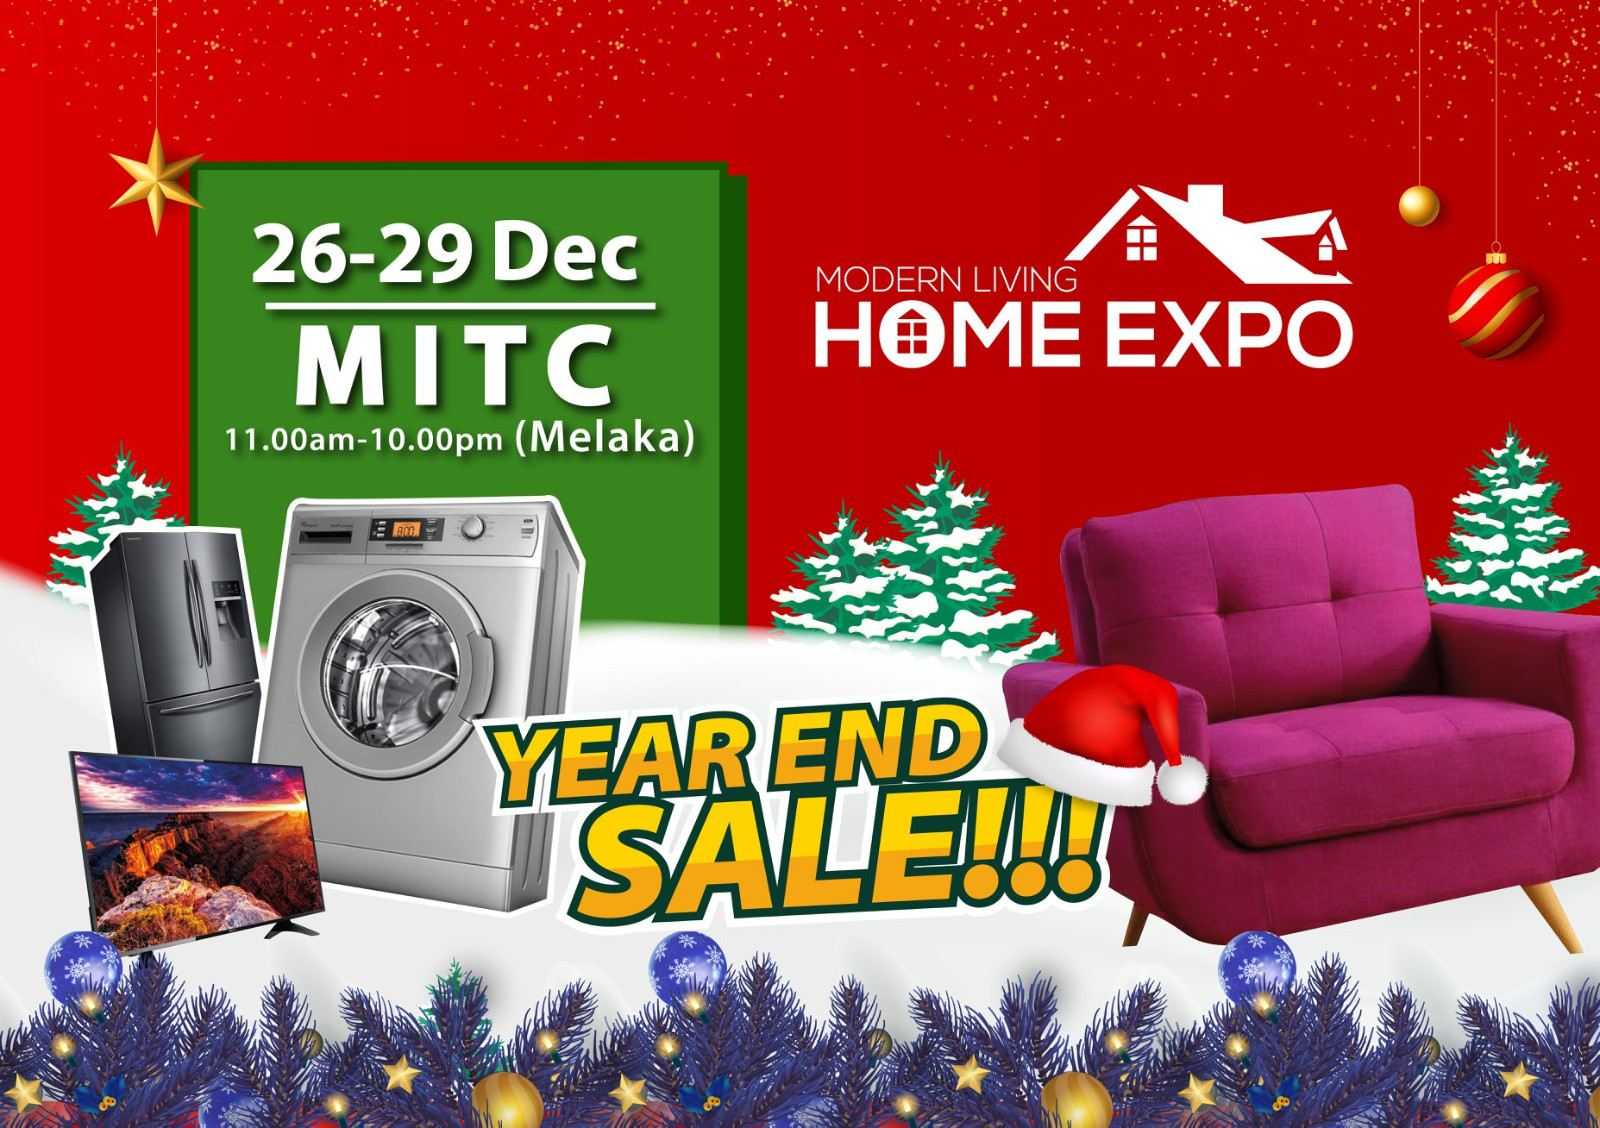 Modern Living Home Expo @MITC, 26-29 Dec 2019